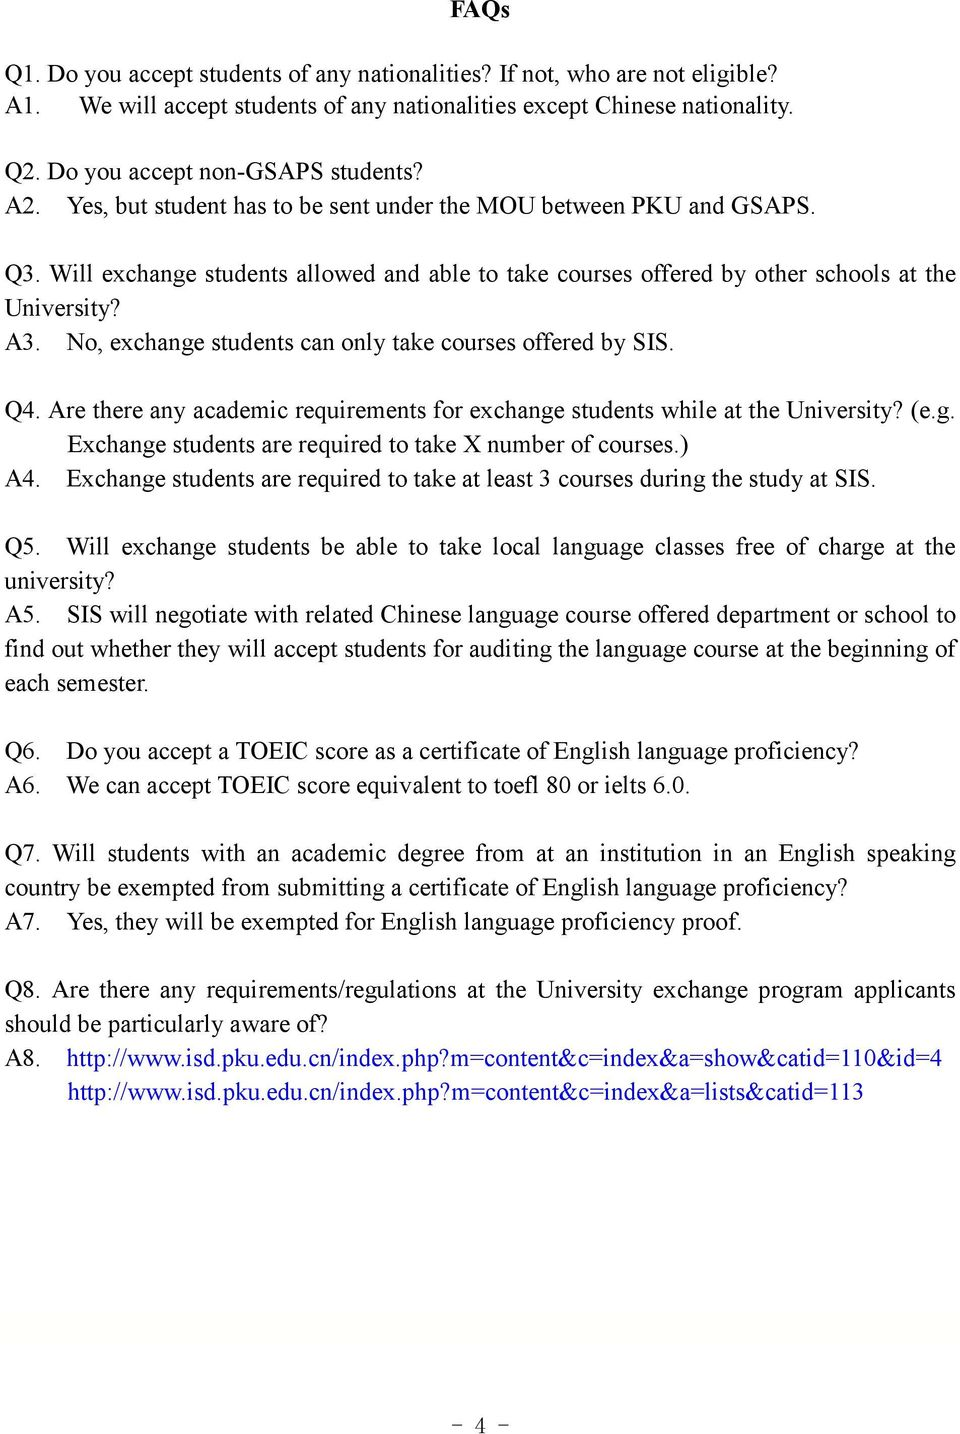 No, exchange students can only take courses offered by SIS. Q4. Are there any academic requirements for exchange students while at the University? (e.g. Exchange students are required to take X number of courses.